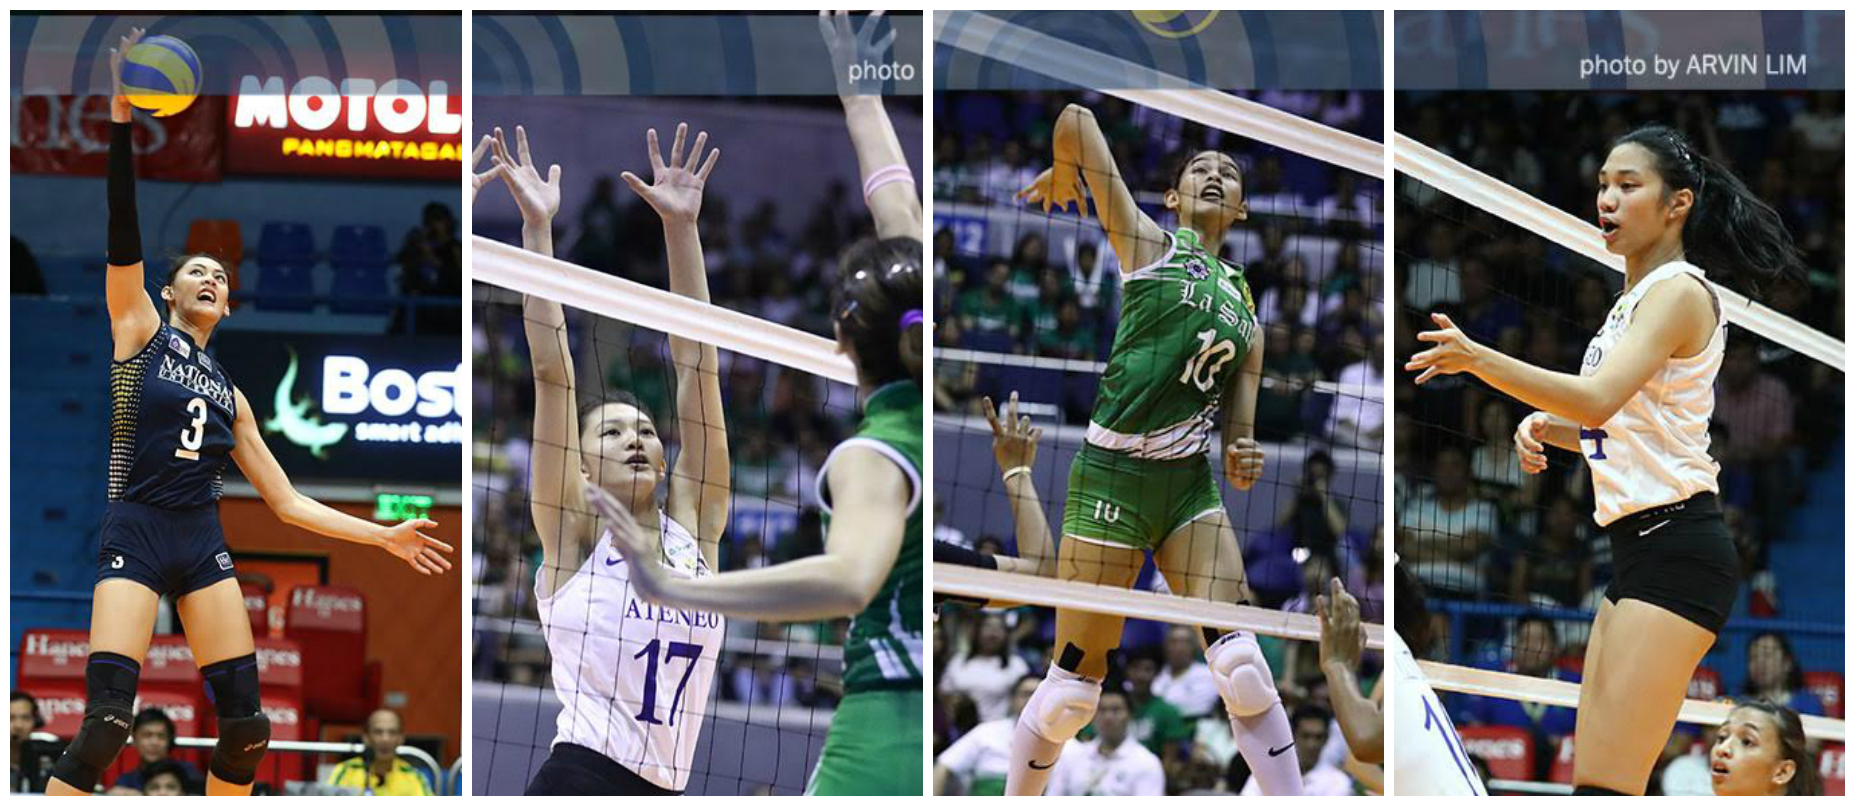 WATCH: Who is this season's most feared middle blocker?